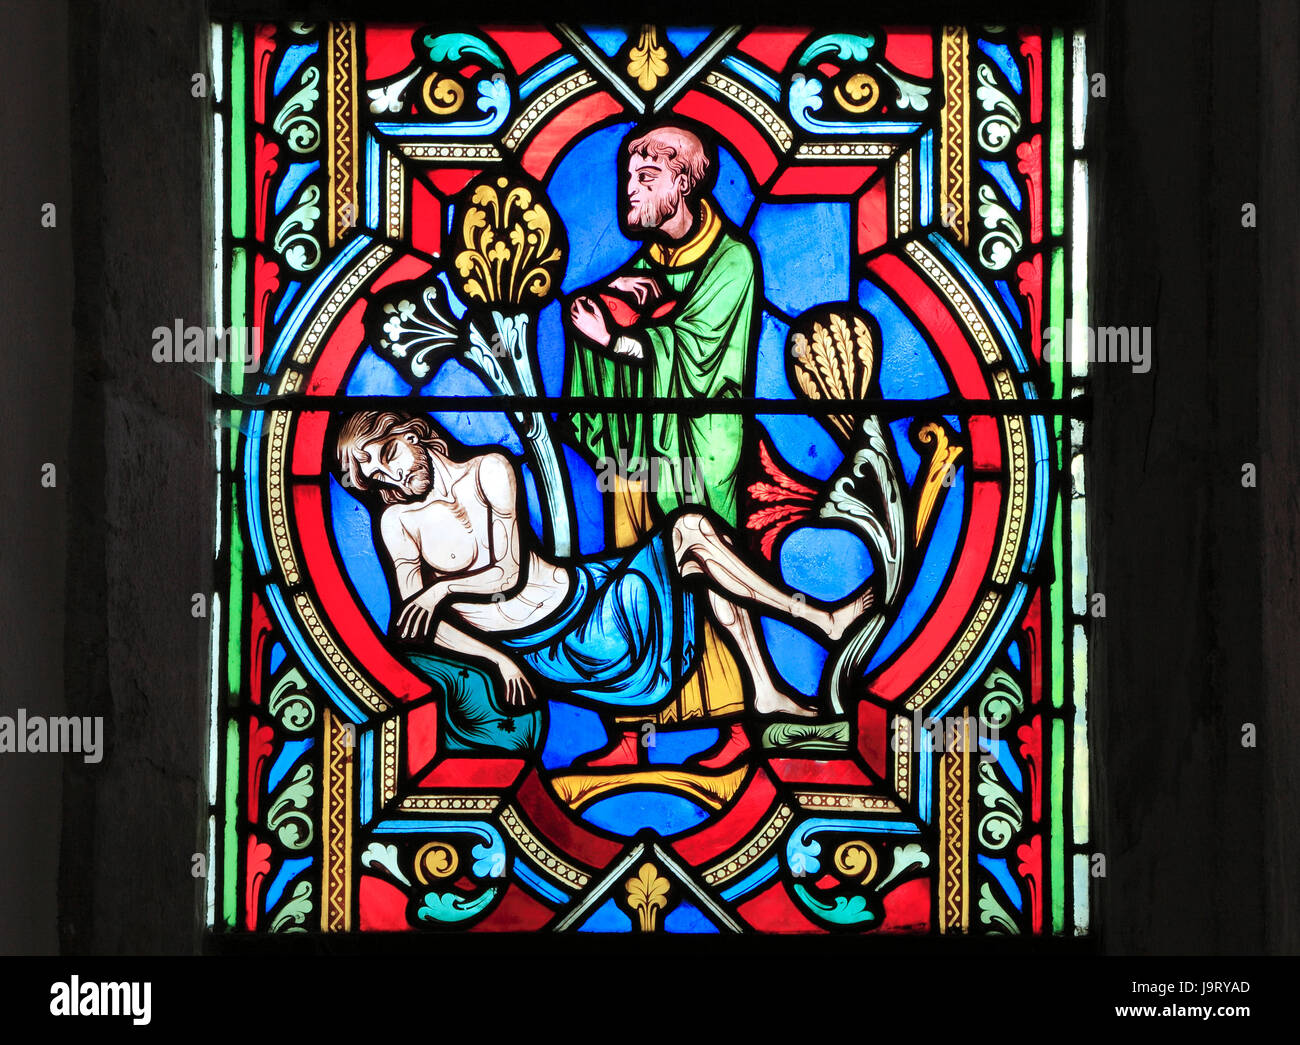 The Good Samaritan Parable, a Priest 'passes by on the other side', ignoring dying traveller, by Oudinot - Stock Image